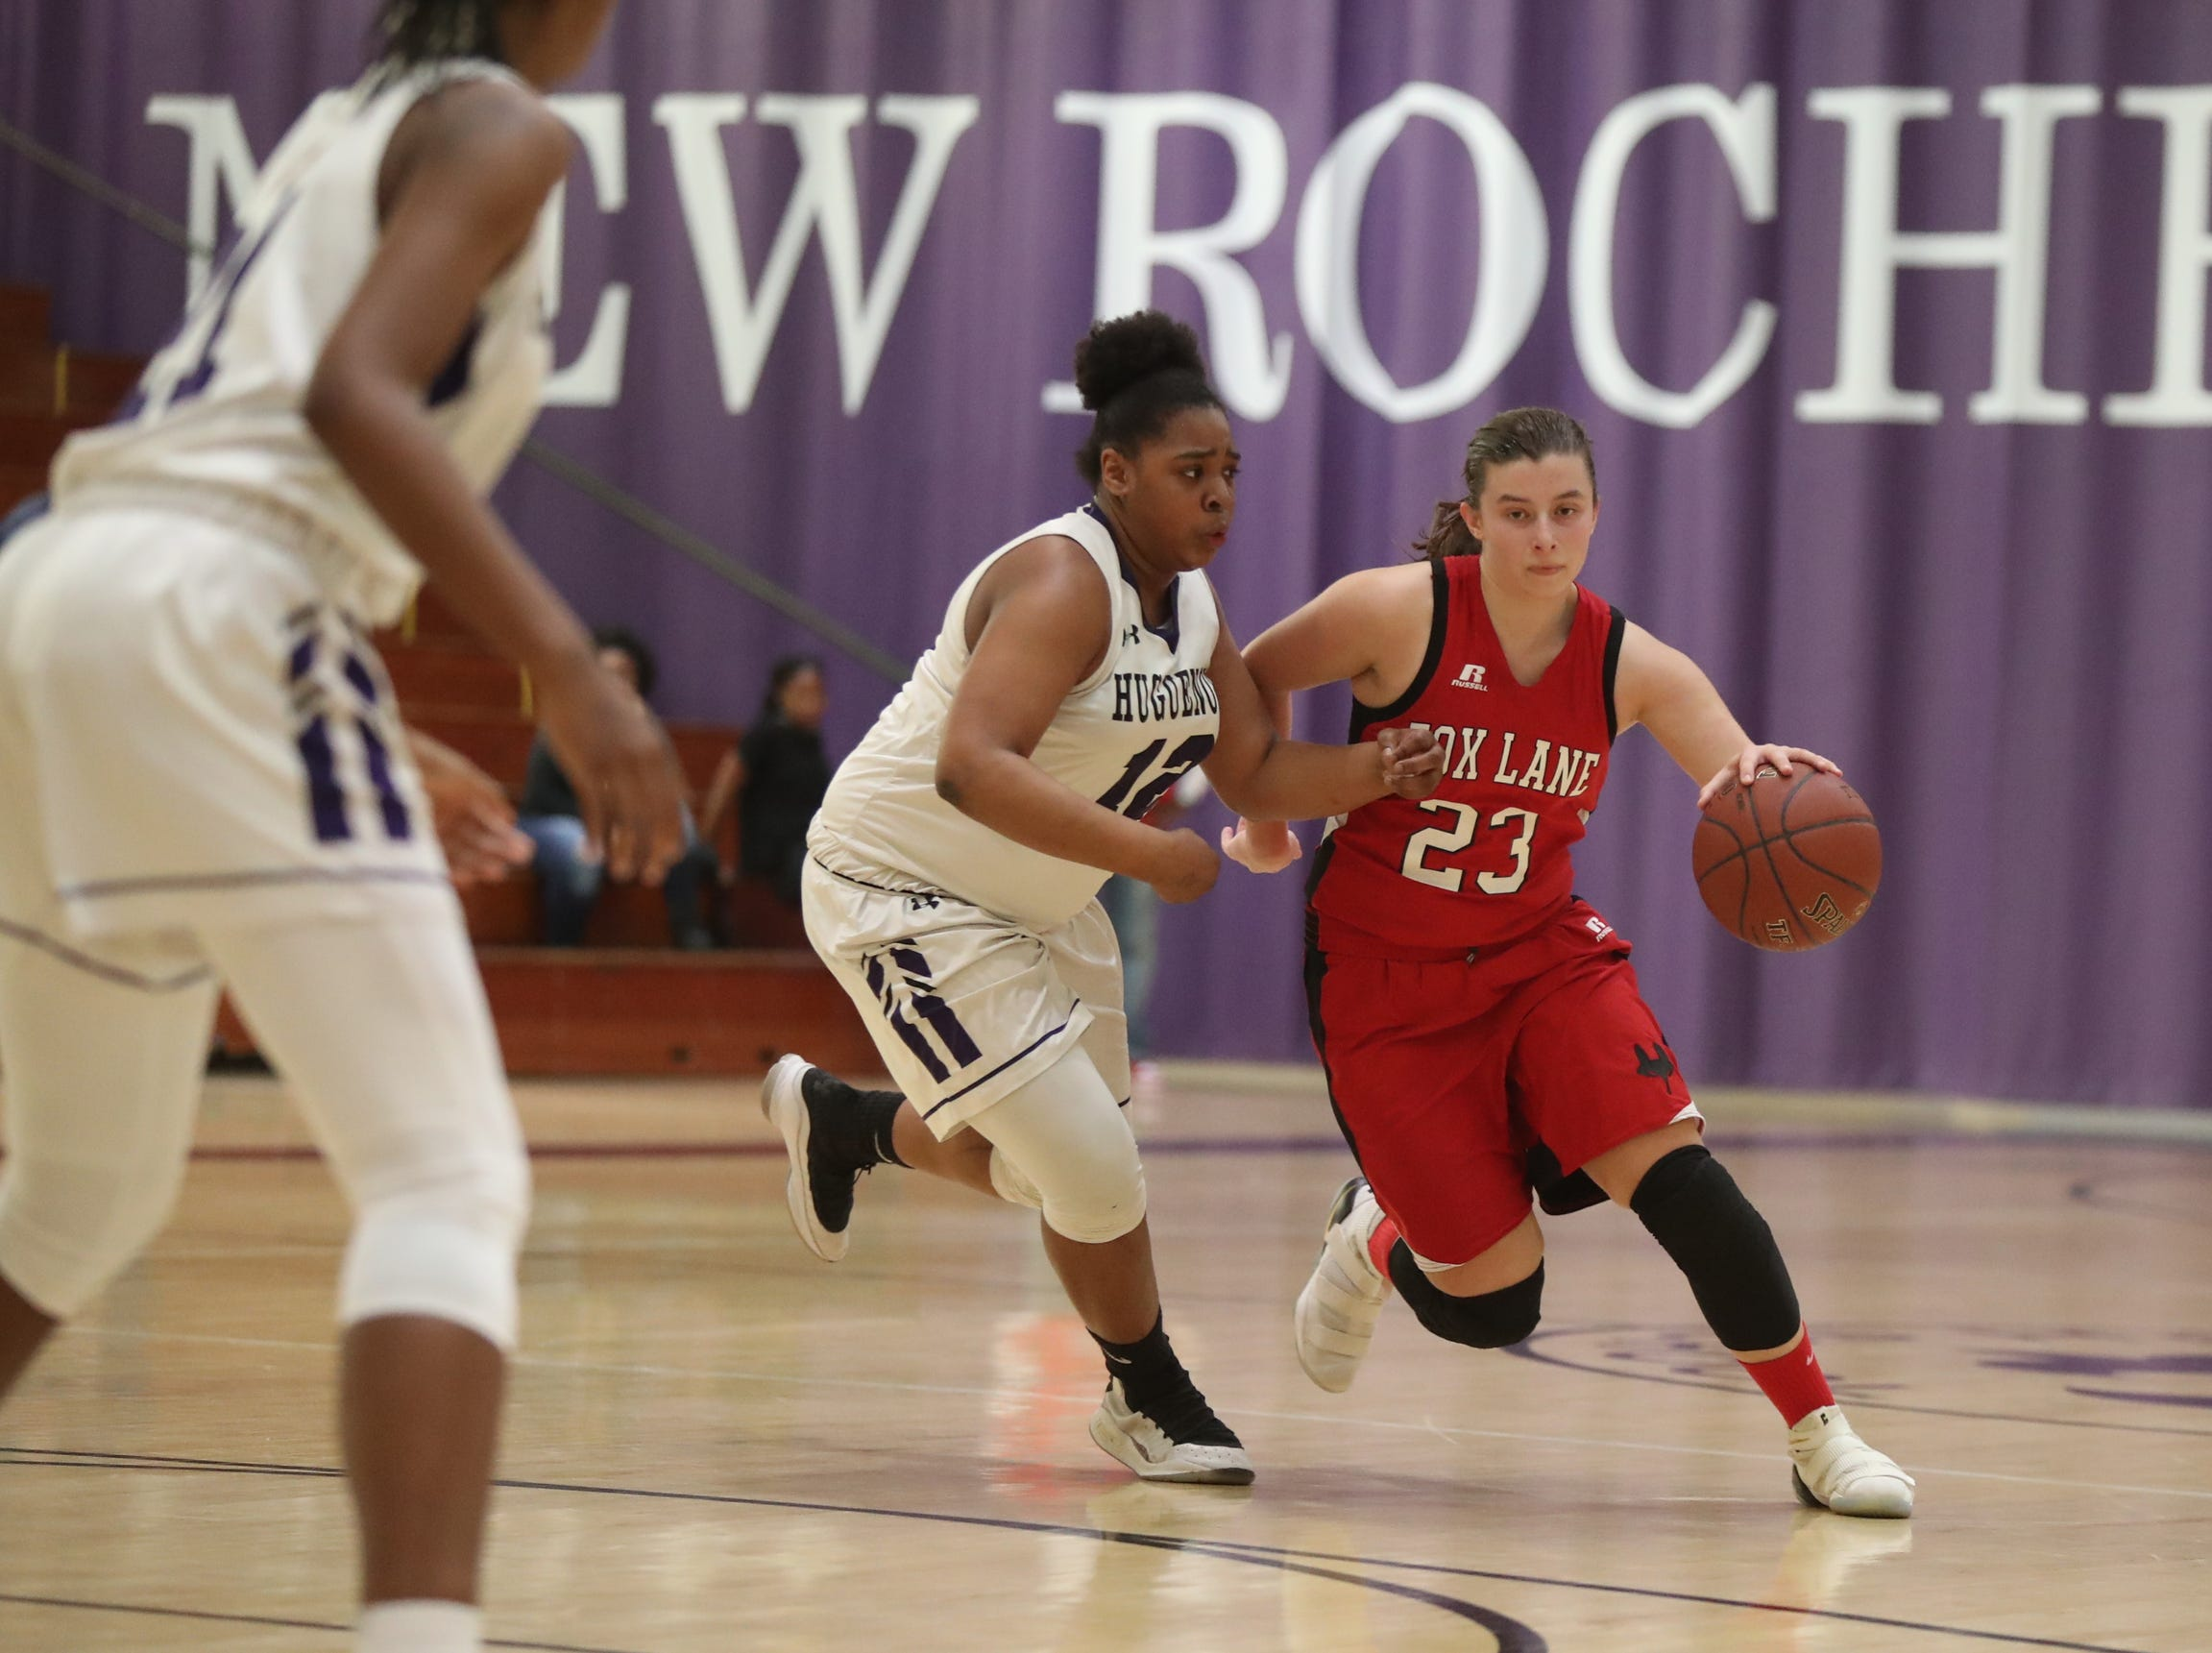 Fox Lane's Natalie Pence (23)  works around New Rochelle's Makira Bunsie (12)  in the class AA girls basketball outbracket game at New Rochelle High School in New Rochelle on Saturday, February 16, 2019.